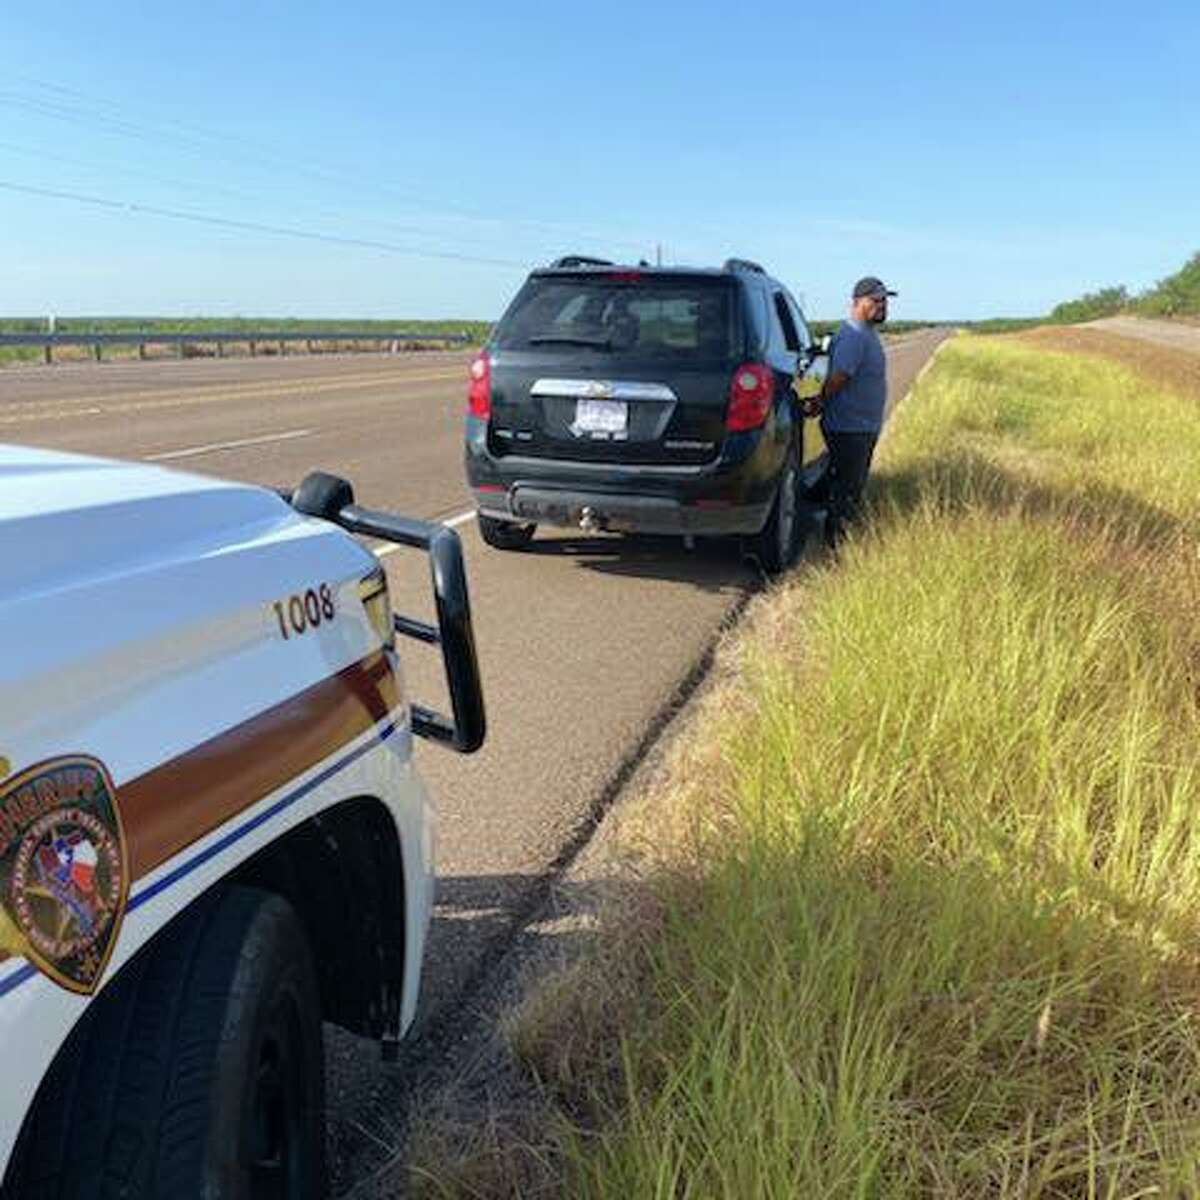 The Zapata County Sheriff's Office turned over two individuals to the USBP.